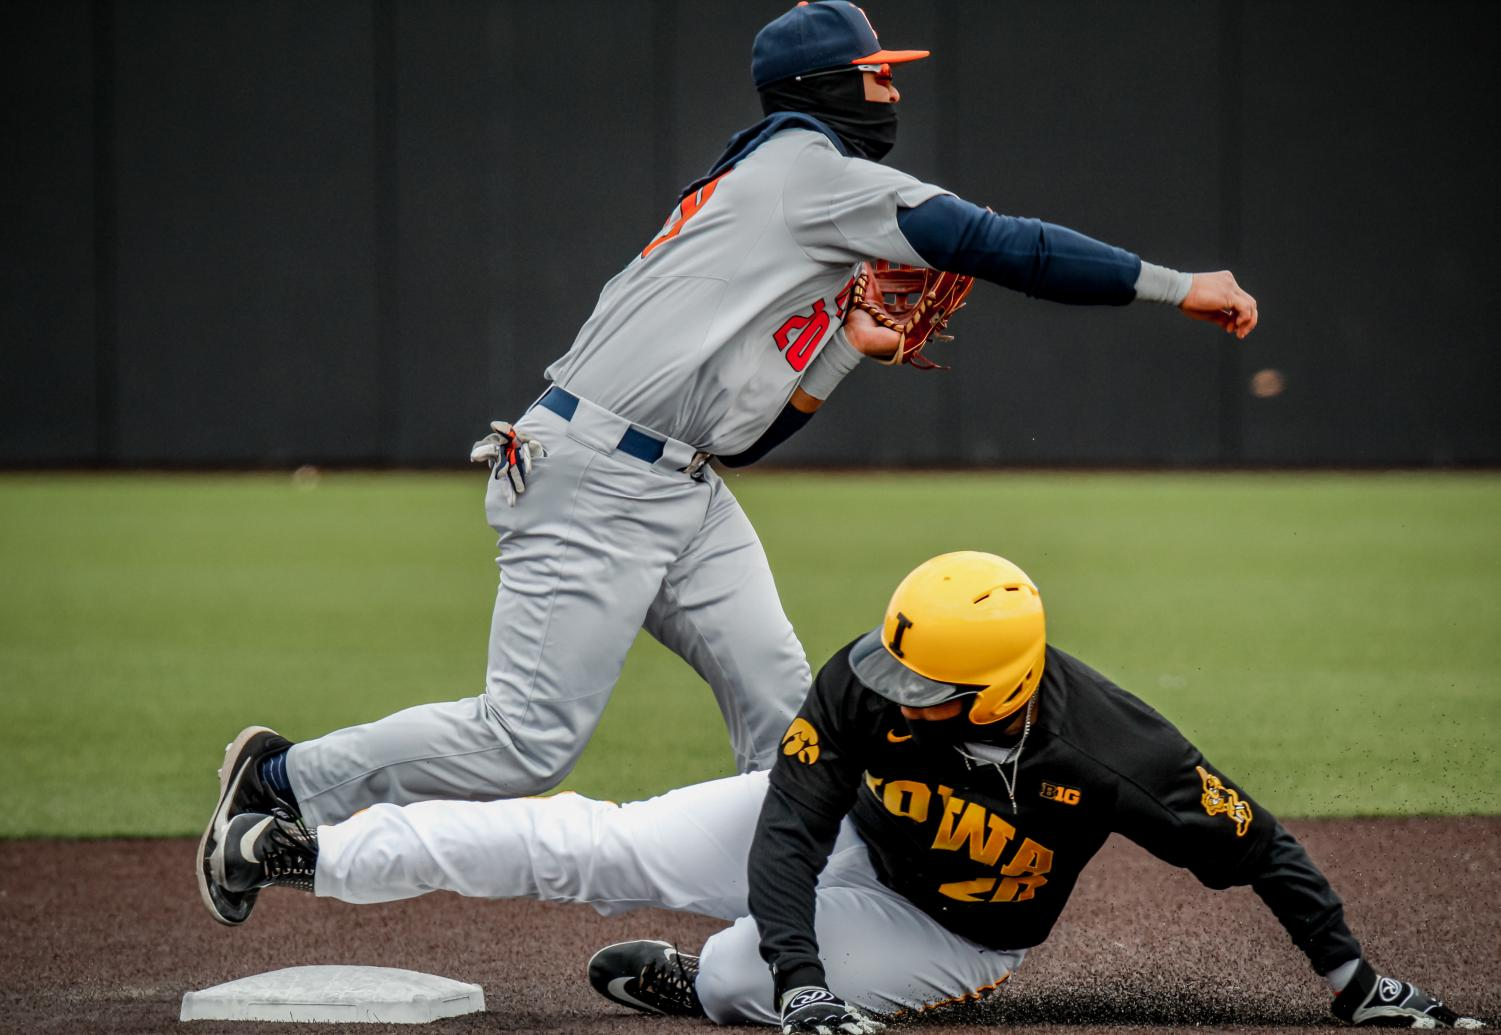 Freshman Brandon Comia throws the ball after tagging an Iowa runner. The Illini's game agains the Hawkeyes took place on Friday in Iowa City, Iowa.